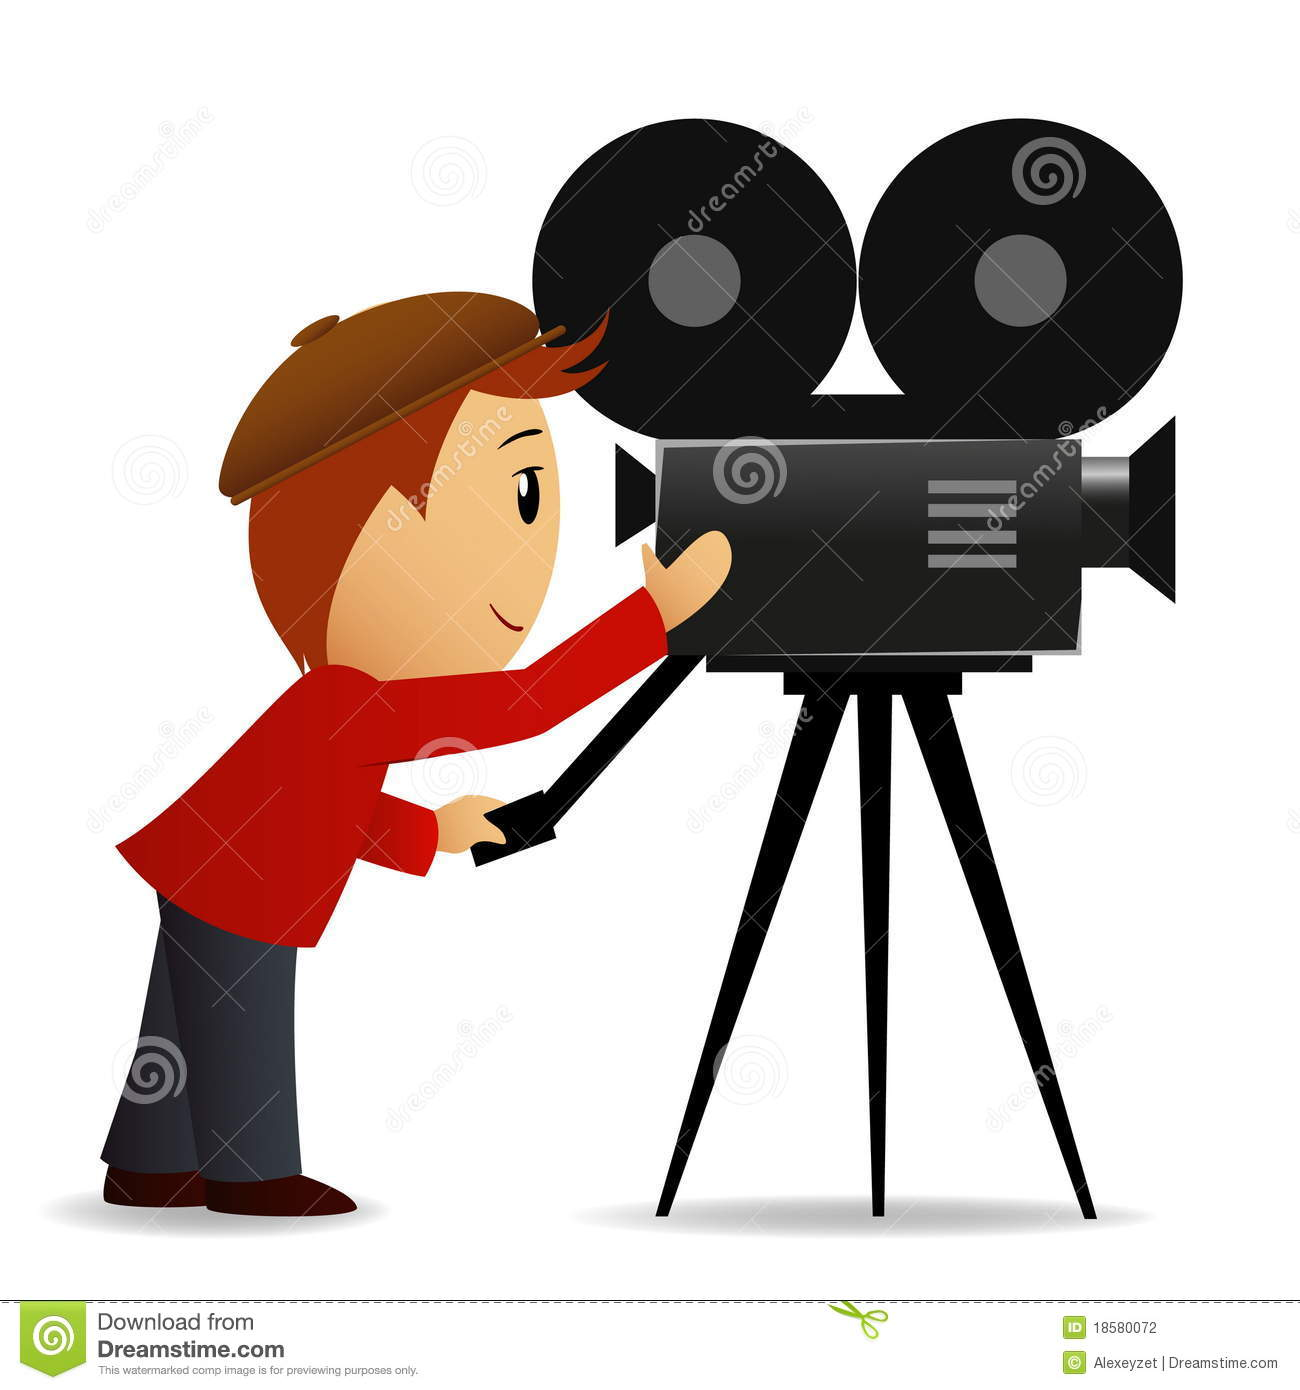 Vector illustration. Cartoon man shoot the cinema with movie camera.